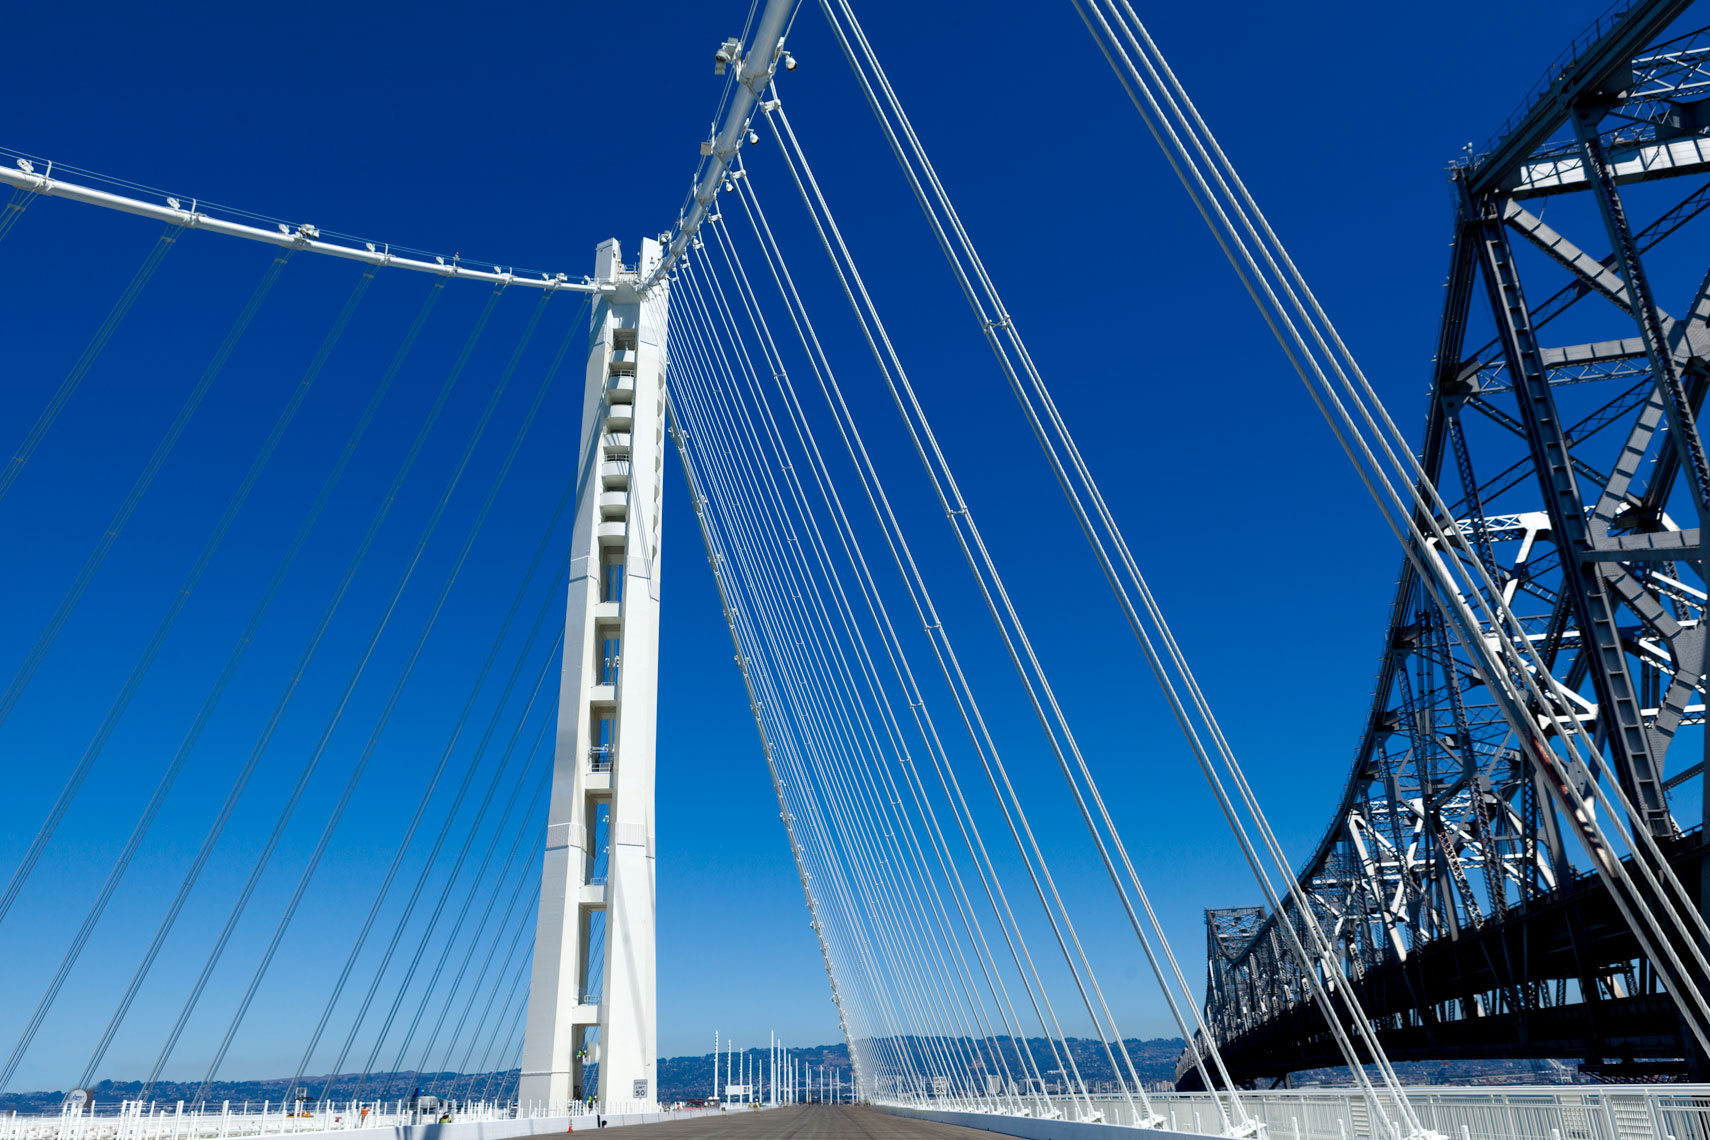 Central_Concrete_Bay_Bridge_E2223.jpg